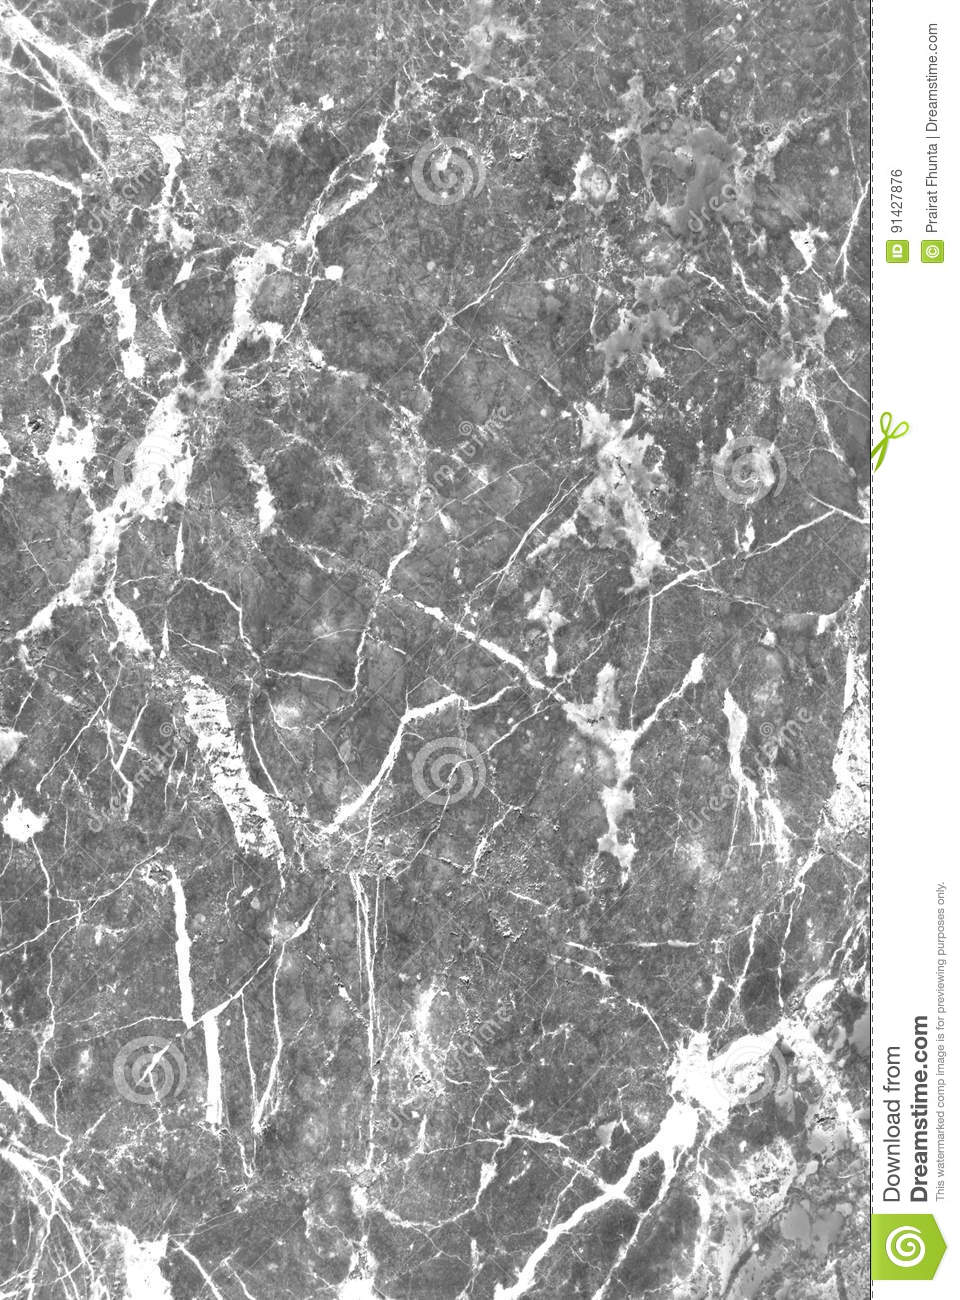 Cool Wallpaper Marble Text - white-grey-marble-texture-pattern-skin-tile-wallpaper-luxurious-background-detailed-genuine-nature-91427876  Photograph_67726.jpg